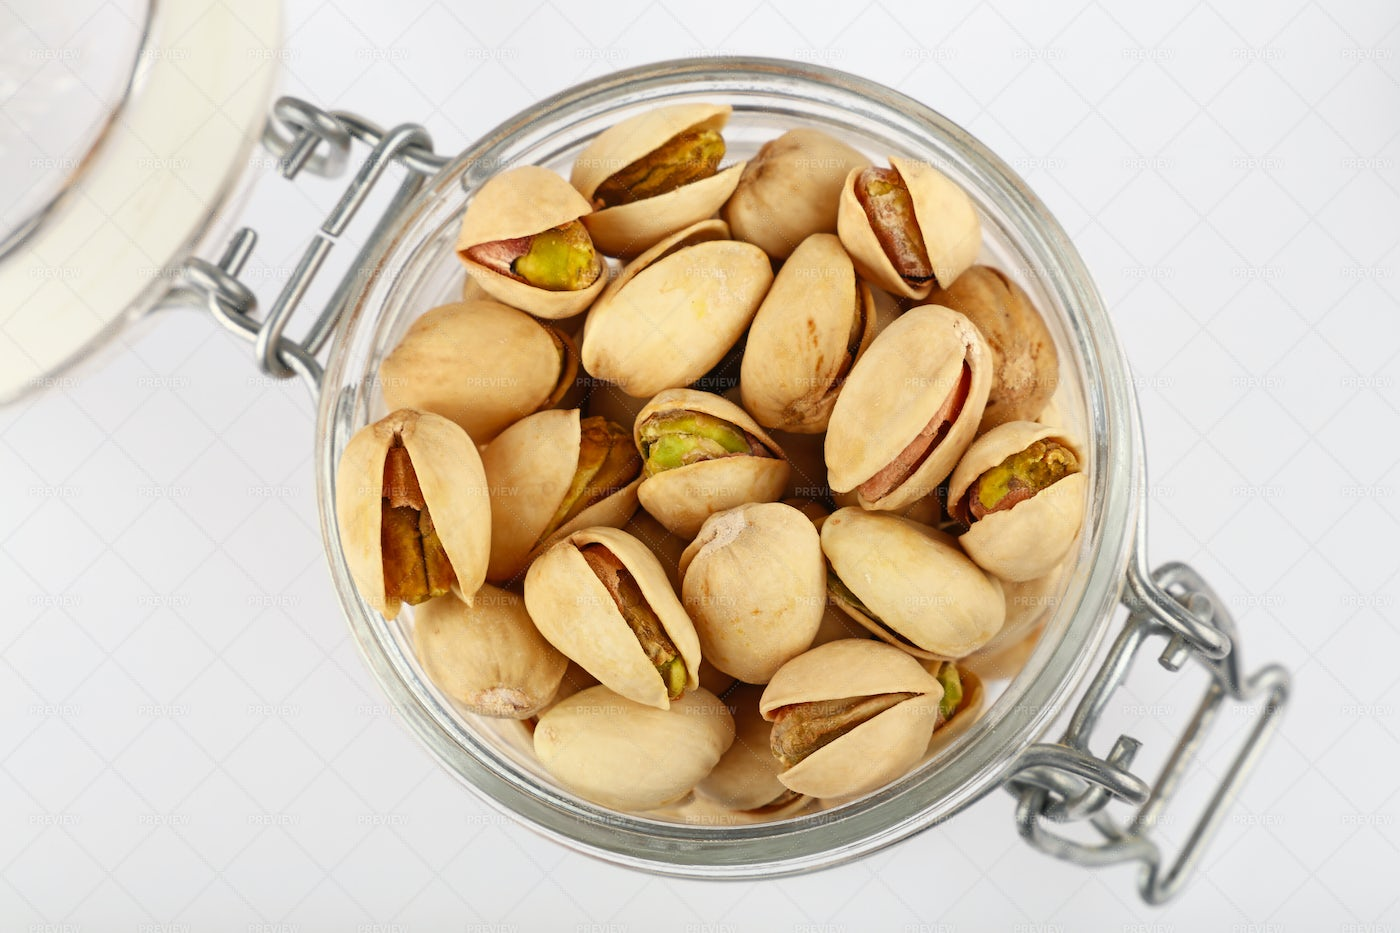 Roasted Pistachio Nuts In Jar: Stock Photos